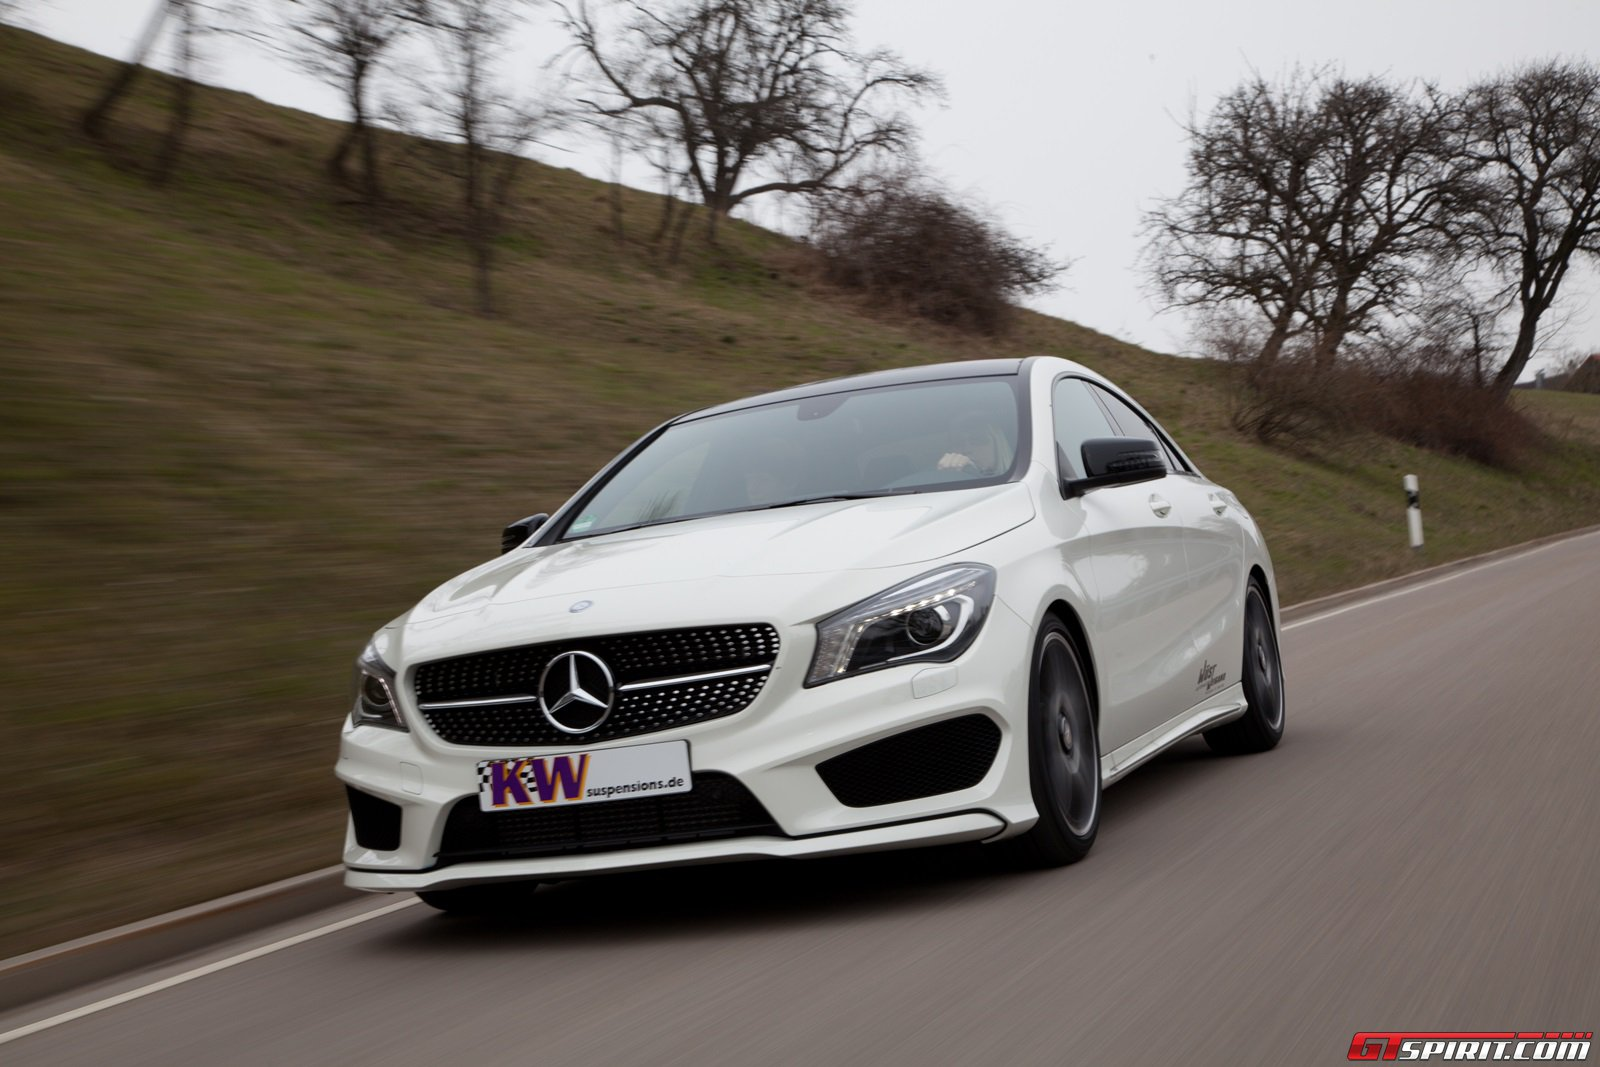 kw coilovers for mercedes benz cla class mercedes cla forum. Black Bedroom Furniture Sets. Home Design Ideas